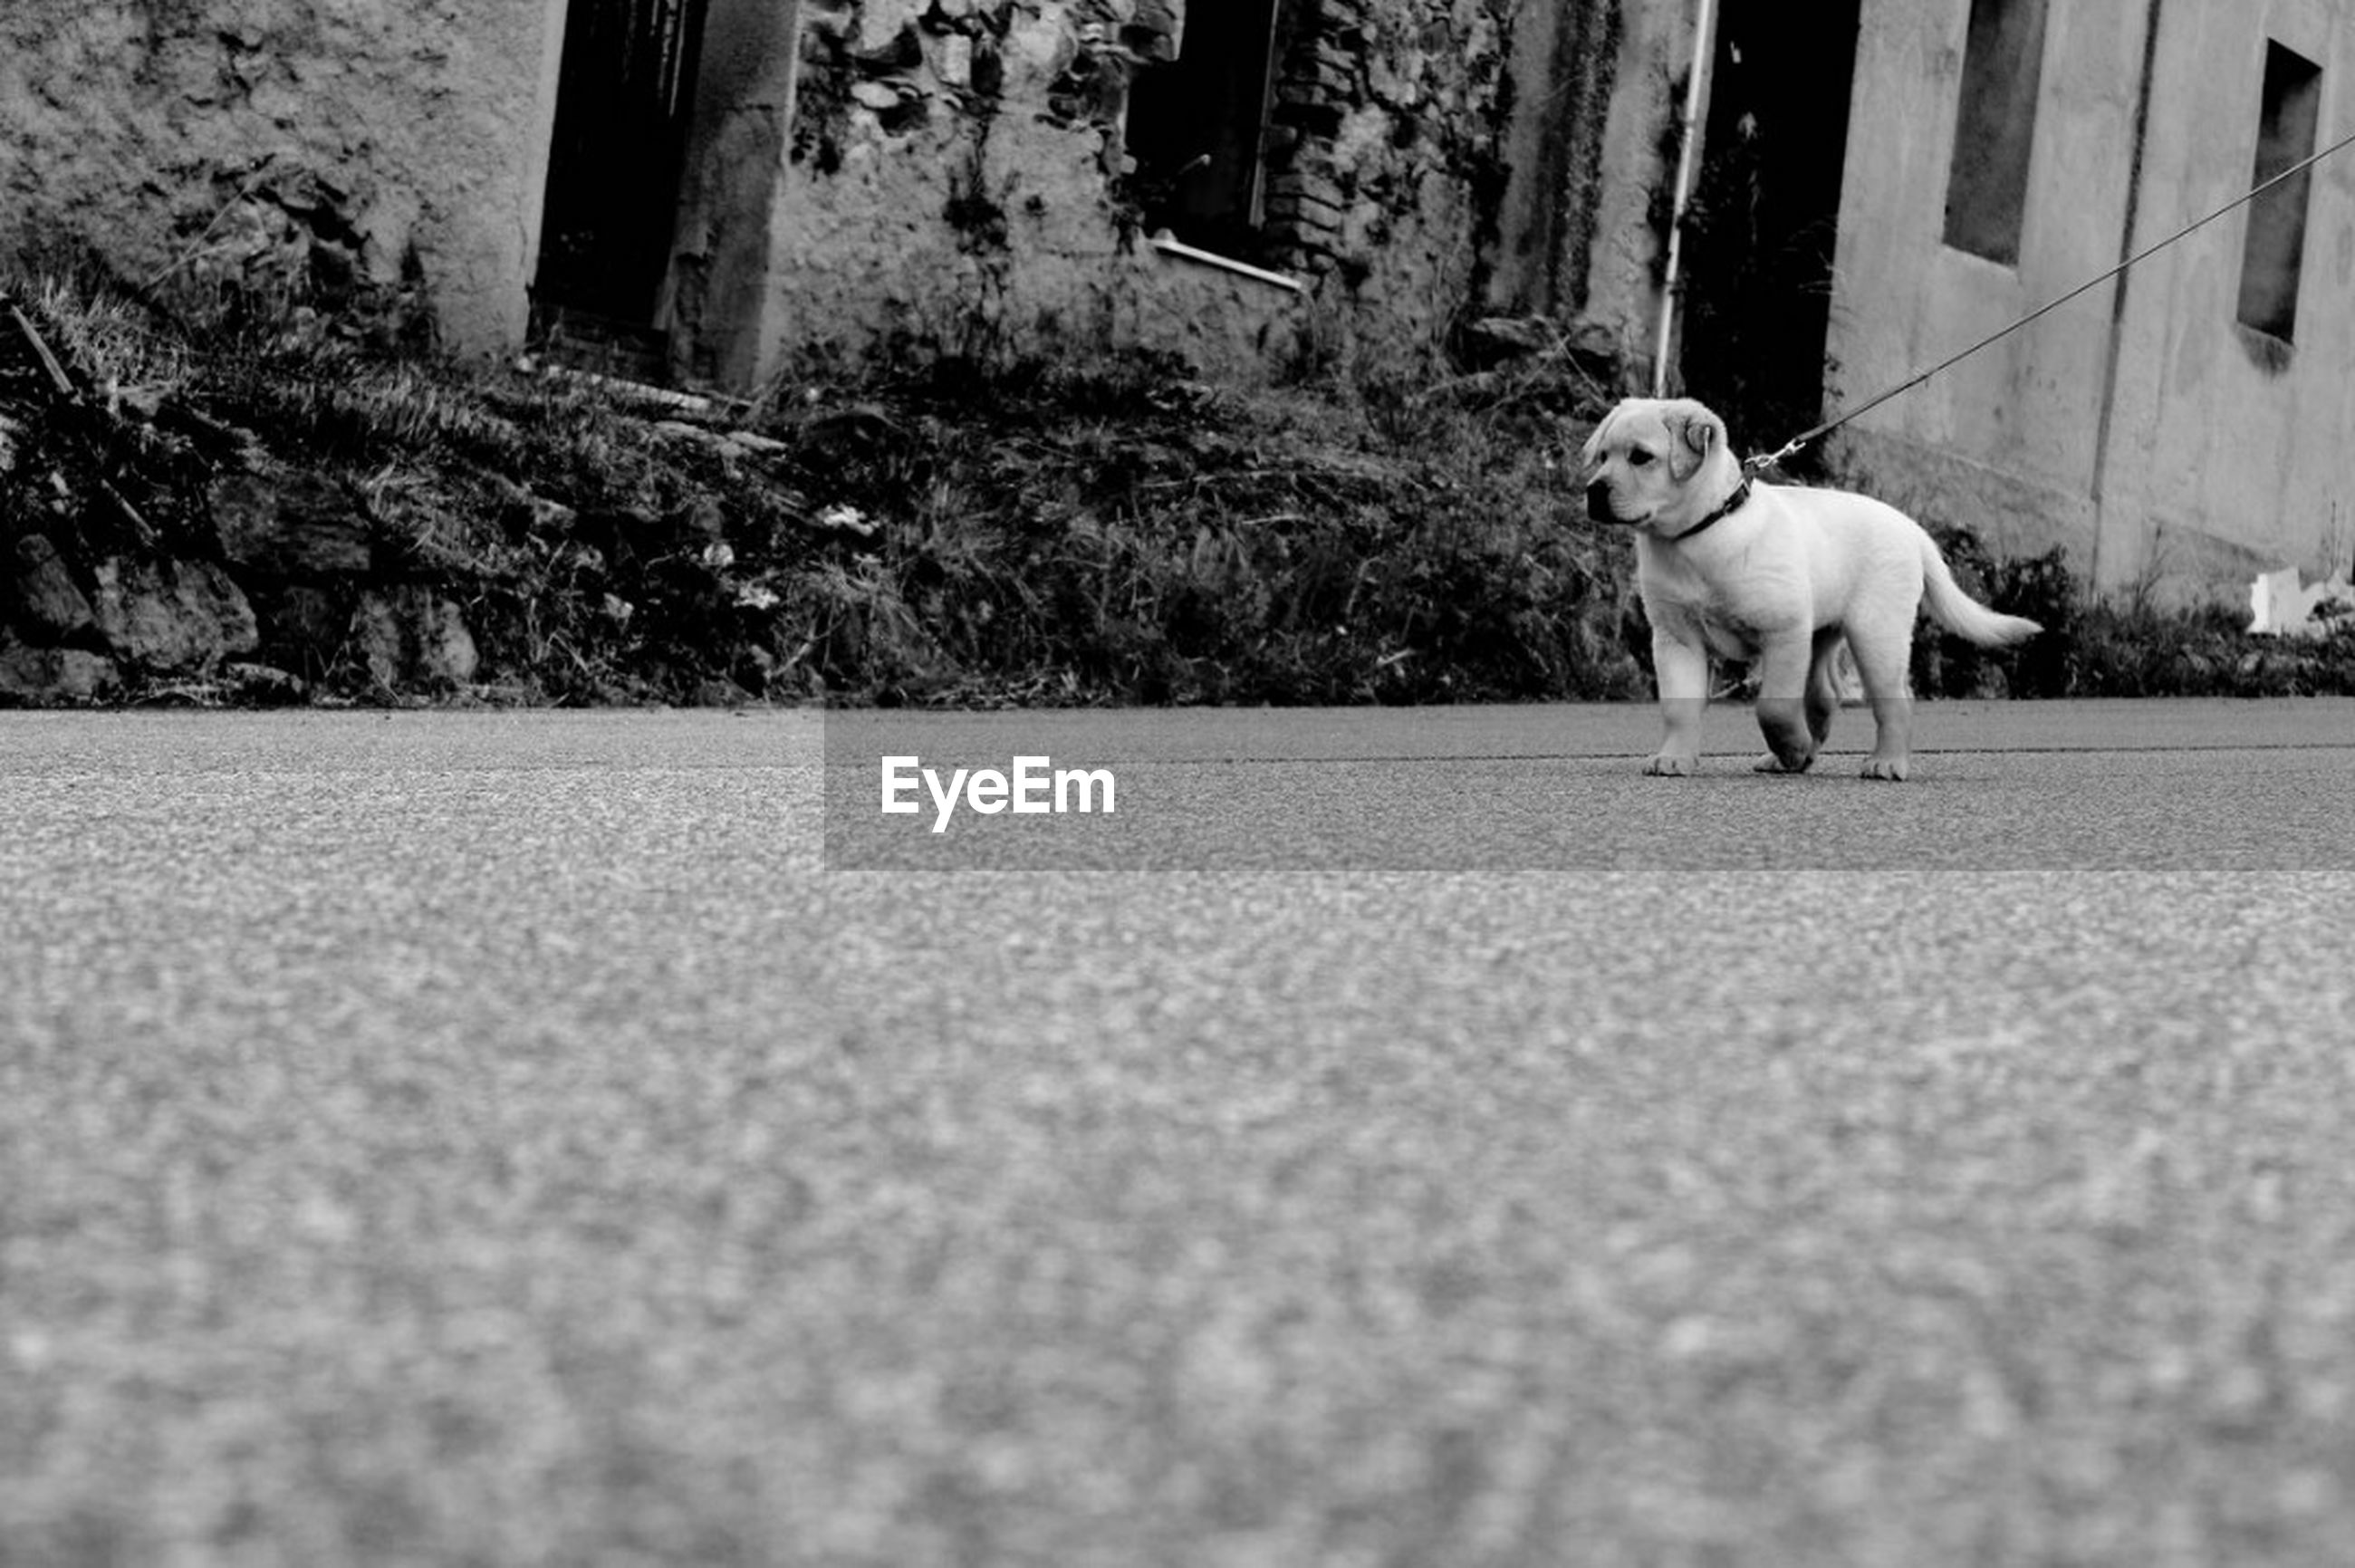 dog, pets, one animal, domestic animals, animal themes, road, mammal, day, puppy, outdoors, no people, full length